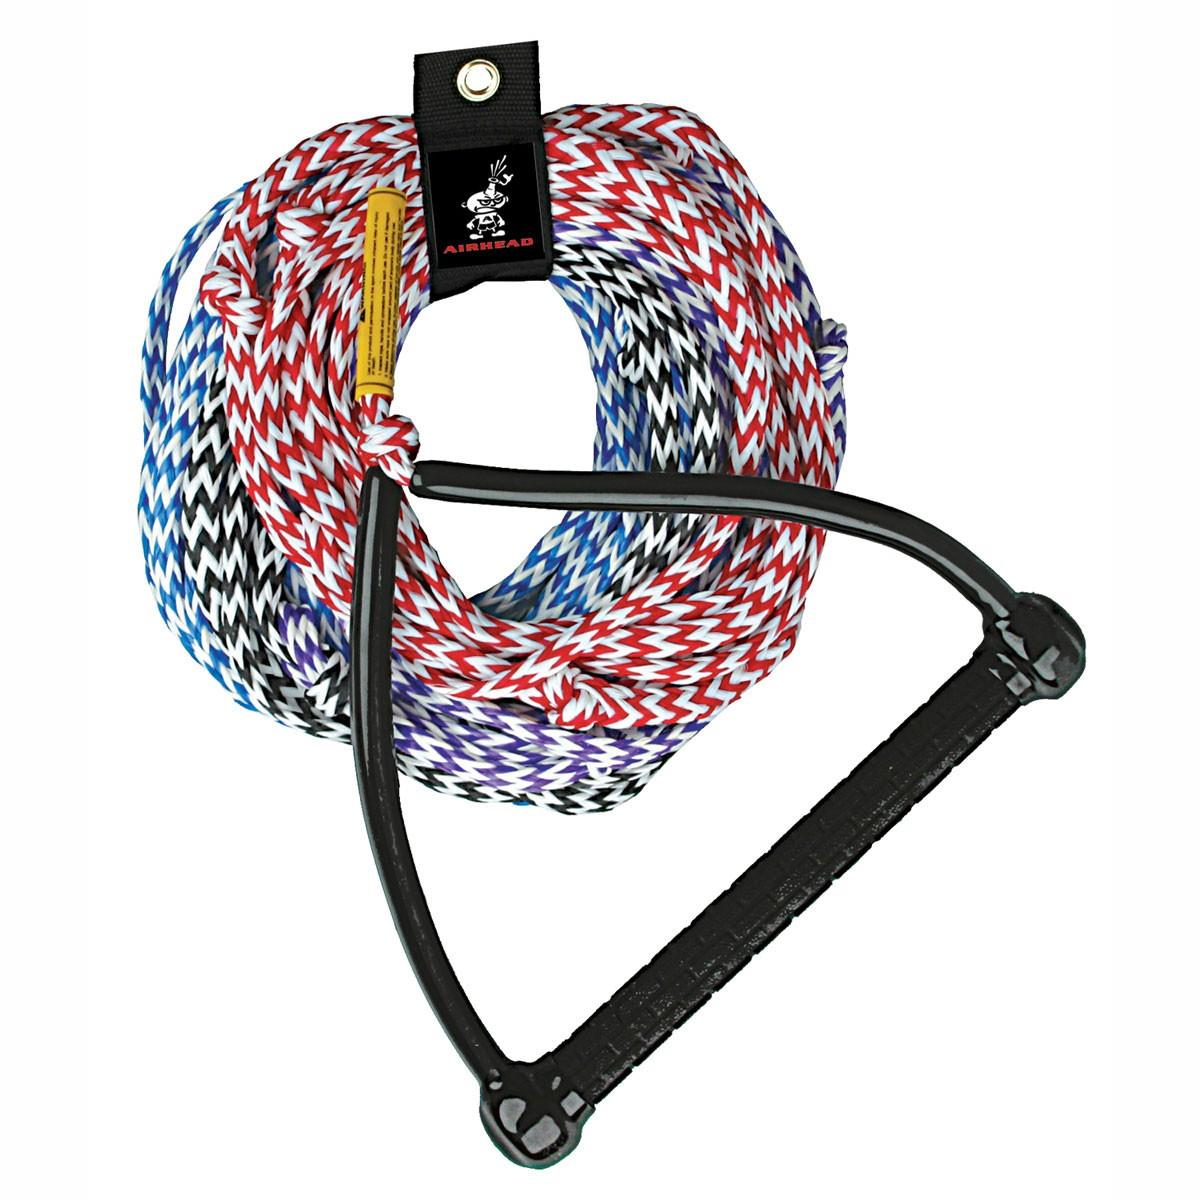 Airhead AHSR-4 4 Section Water Ski Rope by Airhead